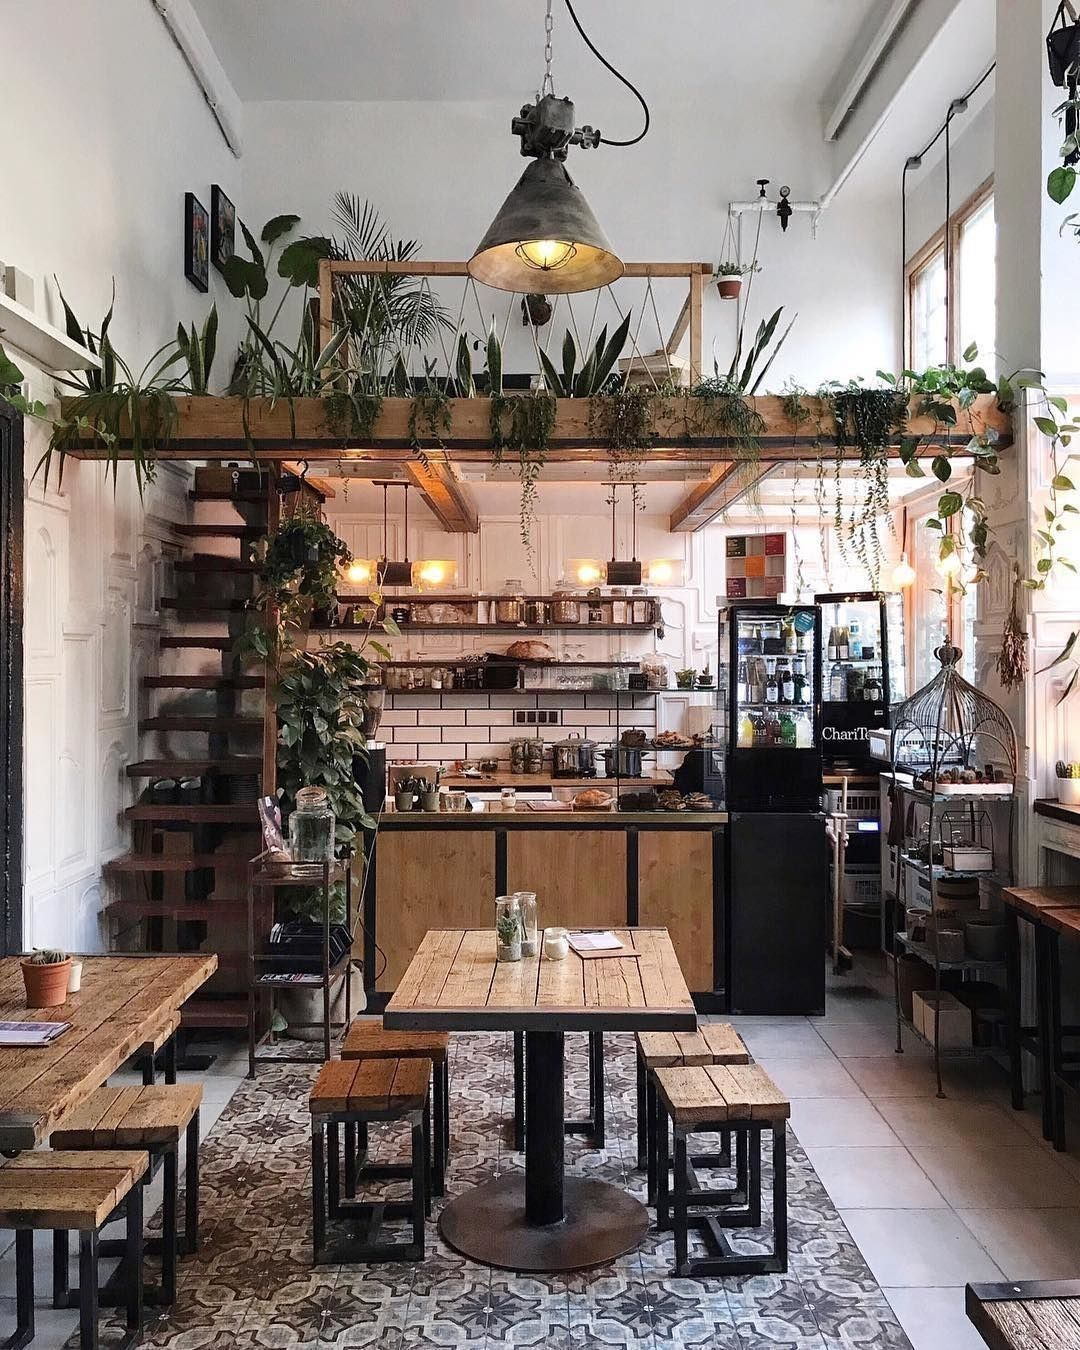 Tag Someone You Would Bring Here For A Breakfast Richardleemassey From Hippie Tribe Commen Cafe Interior Design Cafe Interior Coffee Shops Interior